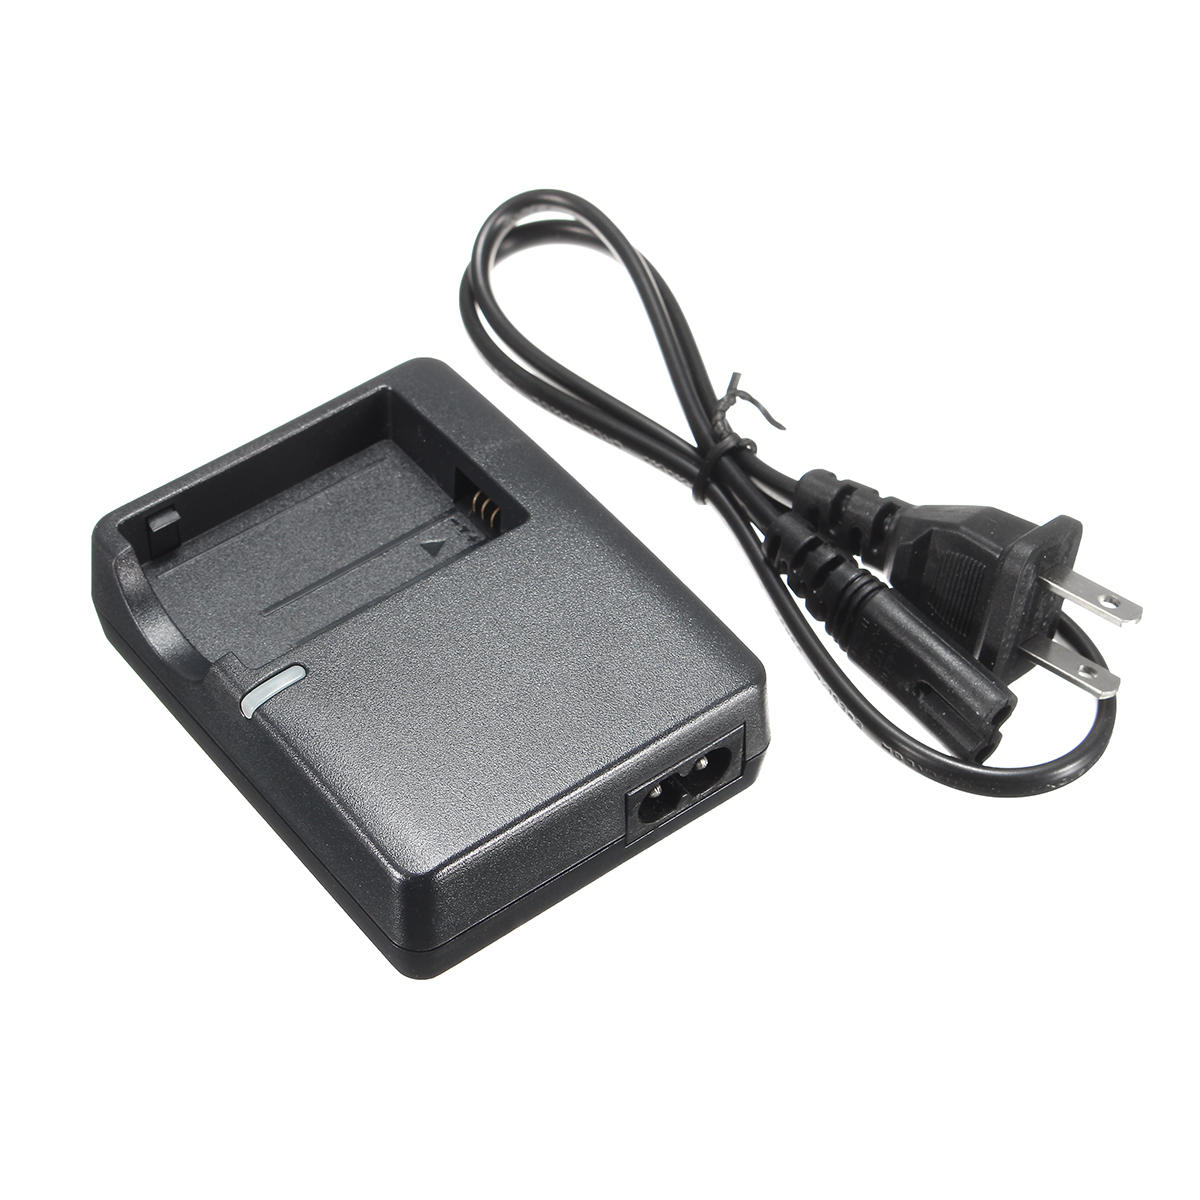 LC-E5E Camera Battery Charger For Canon LP-E5 Rebel XSi XS T1i EOS 500D 1000D 450D